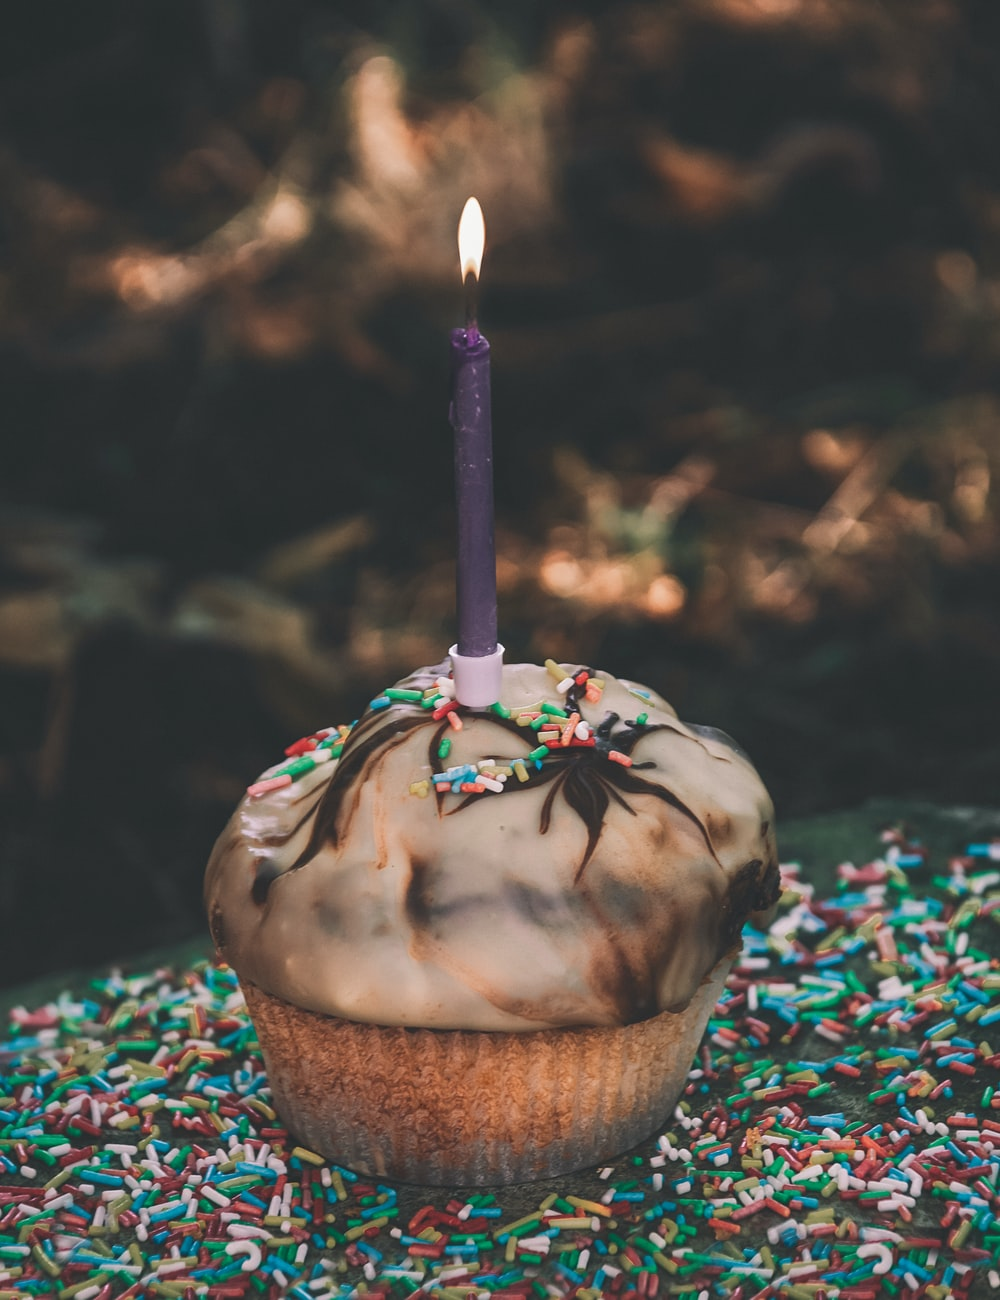 Chocolate Cupcake With Purple Candle On Top